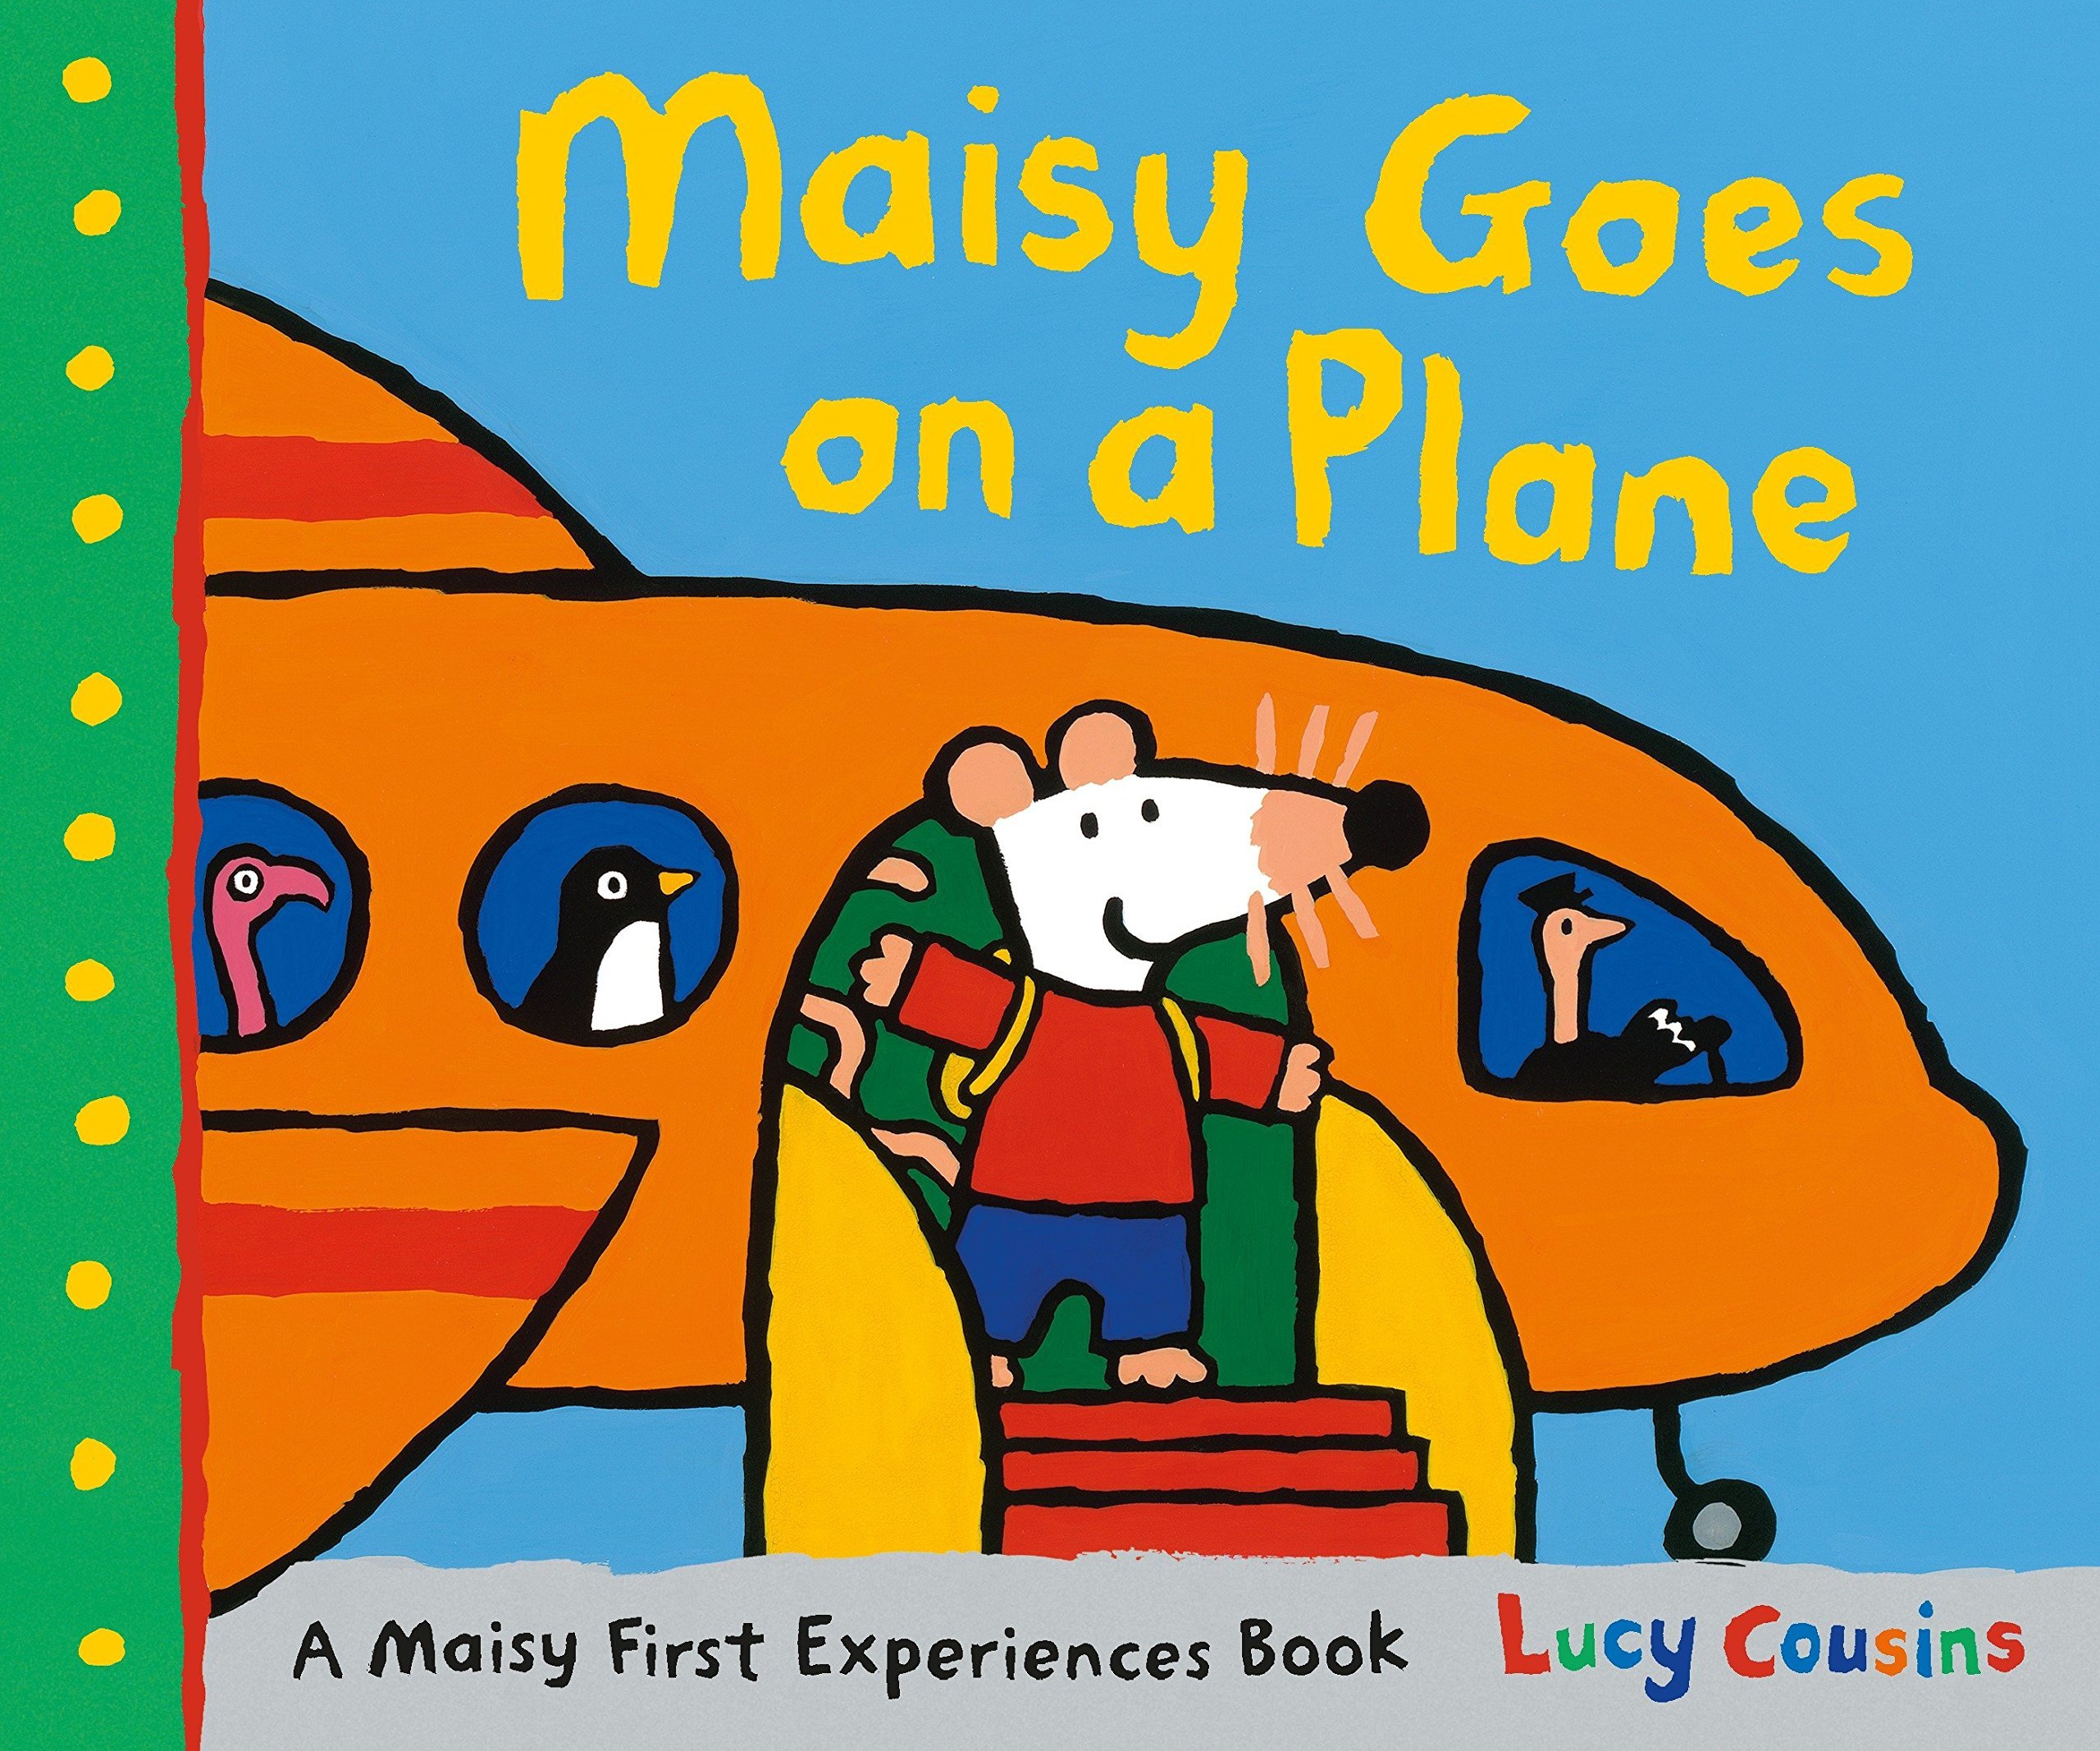 Maisy Goes on a Plane: A Maisy First Experiences Book Paperback – October 10, 2017 Lucy Cousins Candlewick 0763697915 Transportation - Aviation